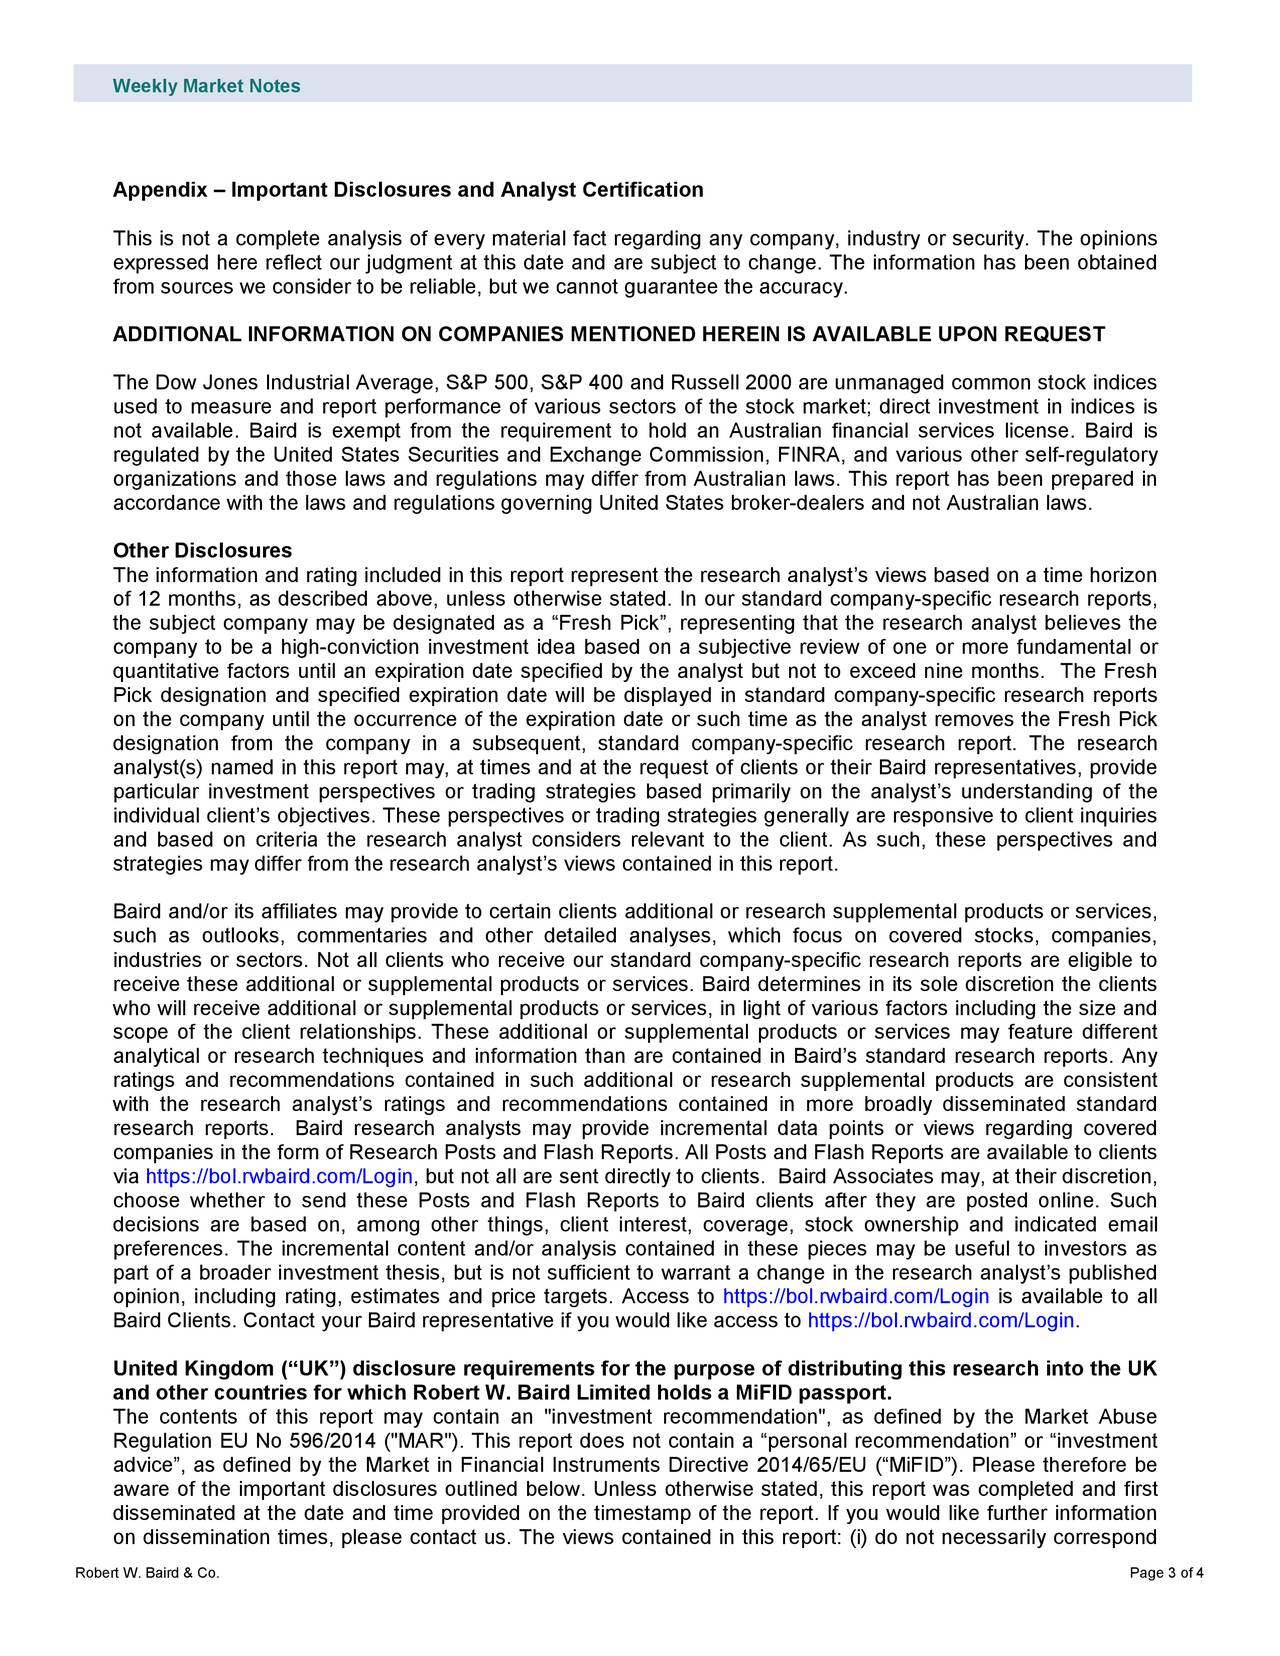 """Appendix – Important Disclosures and Analyst Certification This is not a complete analysis of every material fact regarding any company, industry or security. The opinions expressed here reflect our judgment at this date and are subject to change. The information has been obtained from sources we consider to be reliable, but we cannot guarantee the accuracy. ADDITIONAL INFORMATION ON COMPANIES MENTIONED HEREIN IS AVAILABLE UPON REQUEST The Dow Jones Industrial Average, S&P 500, S&P 400 and Russell 2000 are unmanaged common stock indices used to measure and report performance of various sectors of the stock market; direct investment in indices is not available. Baird is exempt from the requirement to hold an Australian financial services license. Baird is regulated by the United States Securities and Exchange Commission, FINRA, and various other self -regulatory organizations and those laws and regulations may differ from Australian laws. This report has been prepared in accordance with the laws and regulations governing United States broker-dealers and not Australian laws. Other Disclosures The information and rating included in this report represent the research analyst's views based on a time horizon of 12 months, as described above, unless otherwise stated. In our standard company-specific research reports, the subject company may be designated as a """"Fresh Pick"""", representing that the research analyst believes the company to be a high -conviction investment idea based on a subjective review of one or more fundamental or quantitative factors until an expiration date specified by the analyst but not to exceed nine months. The Fresh Pick designation and specified expiration date will be displayed in standard company -specific research reports on the company until the occ urrence of the expiration date or such time as the analyst removes the Fresh Pick designation from the company in a subsequent, standard company -specific research report. The research analyst(s) na"""